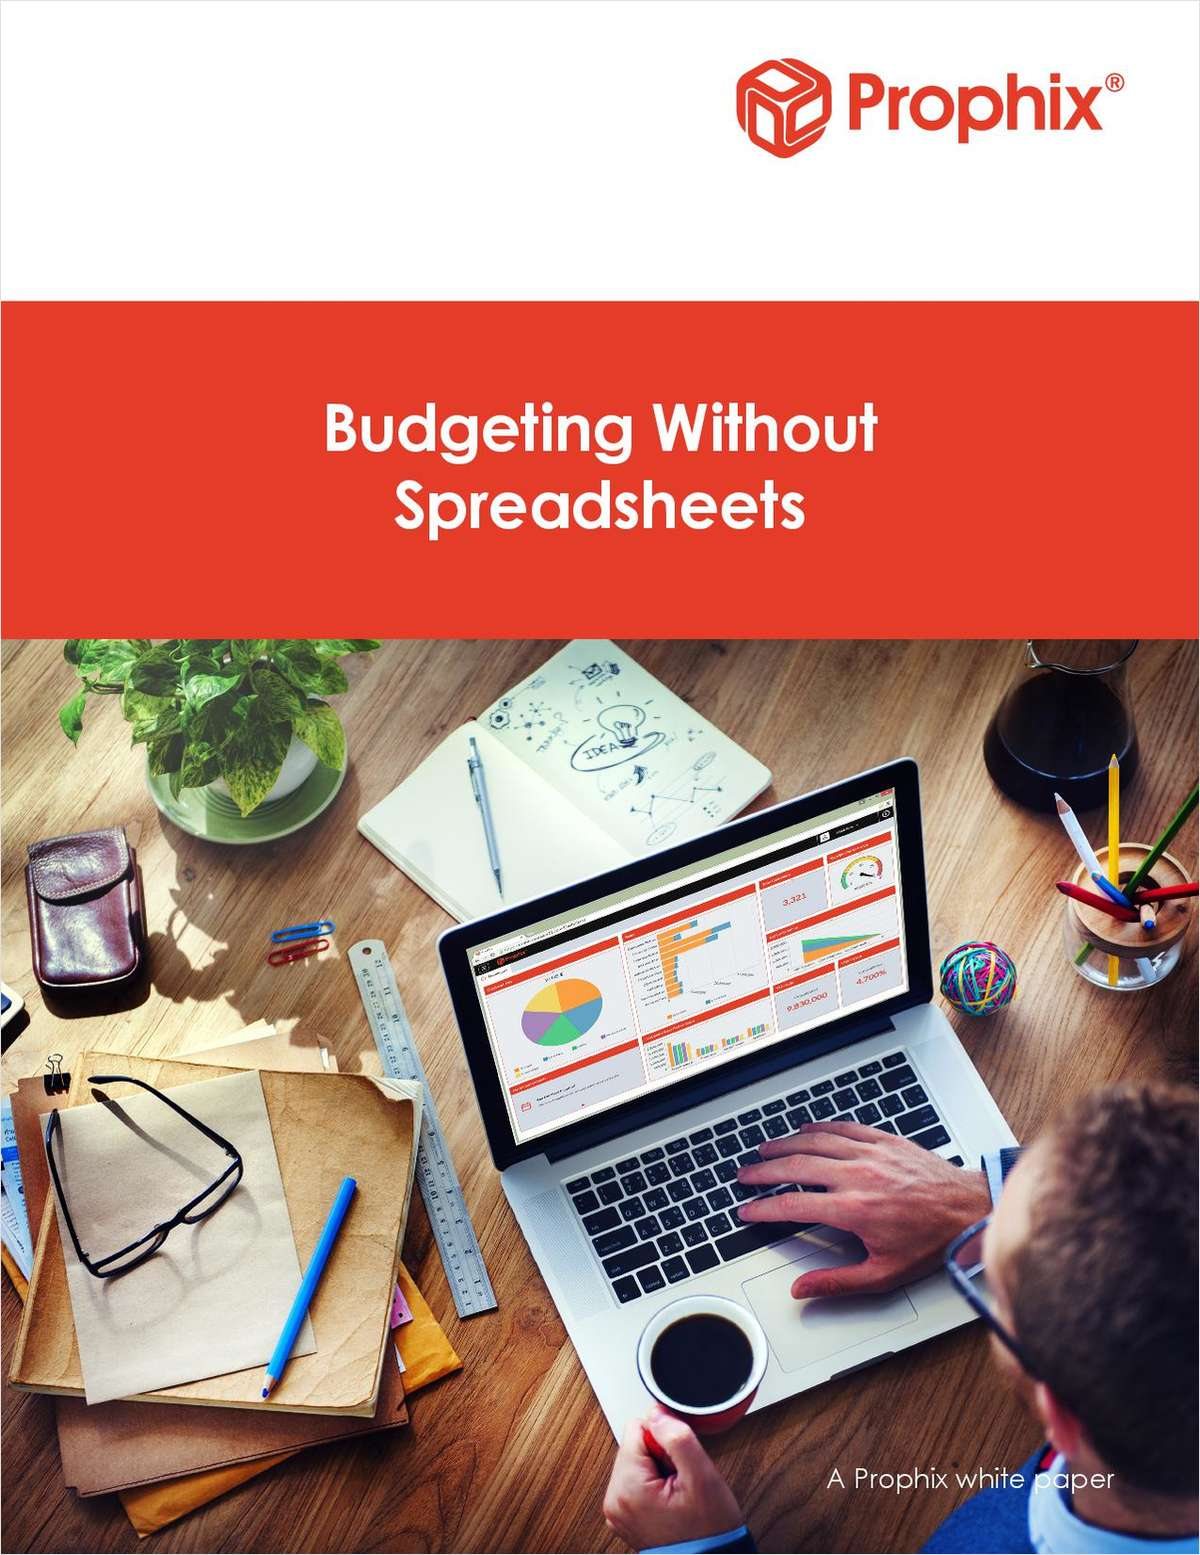 Taking the Spreadsheets out of Budgeting